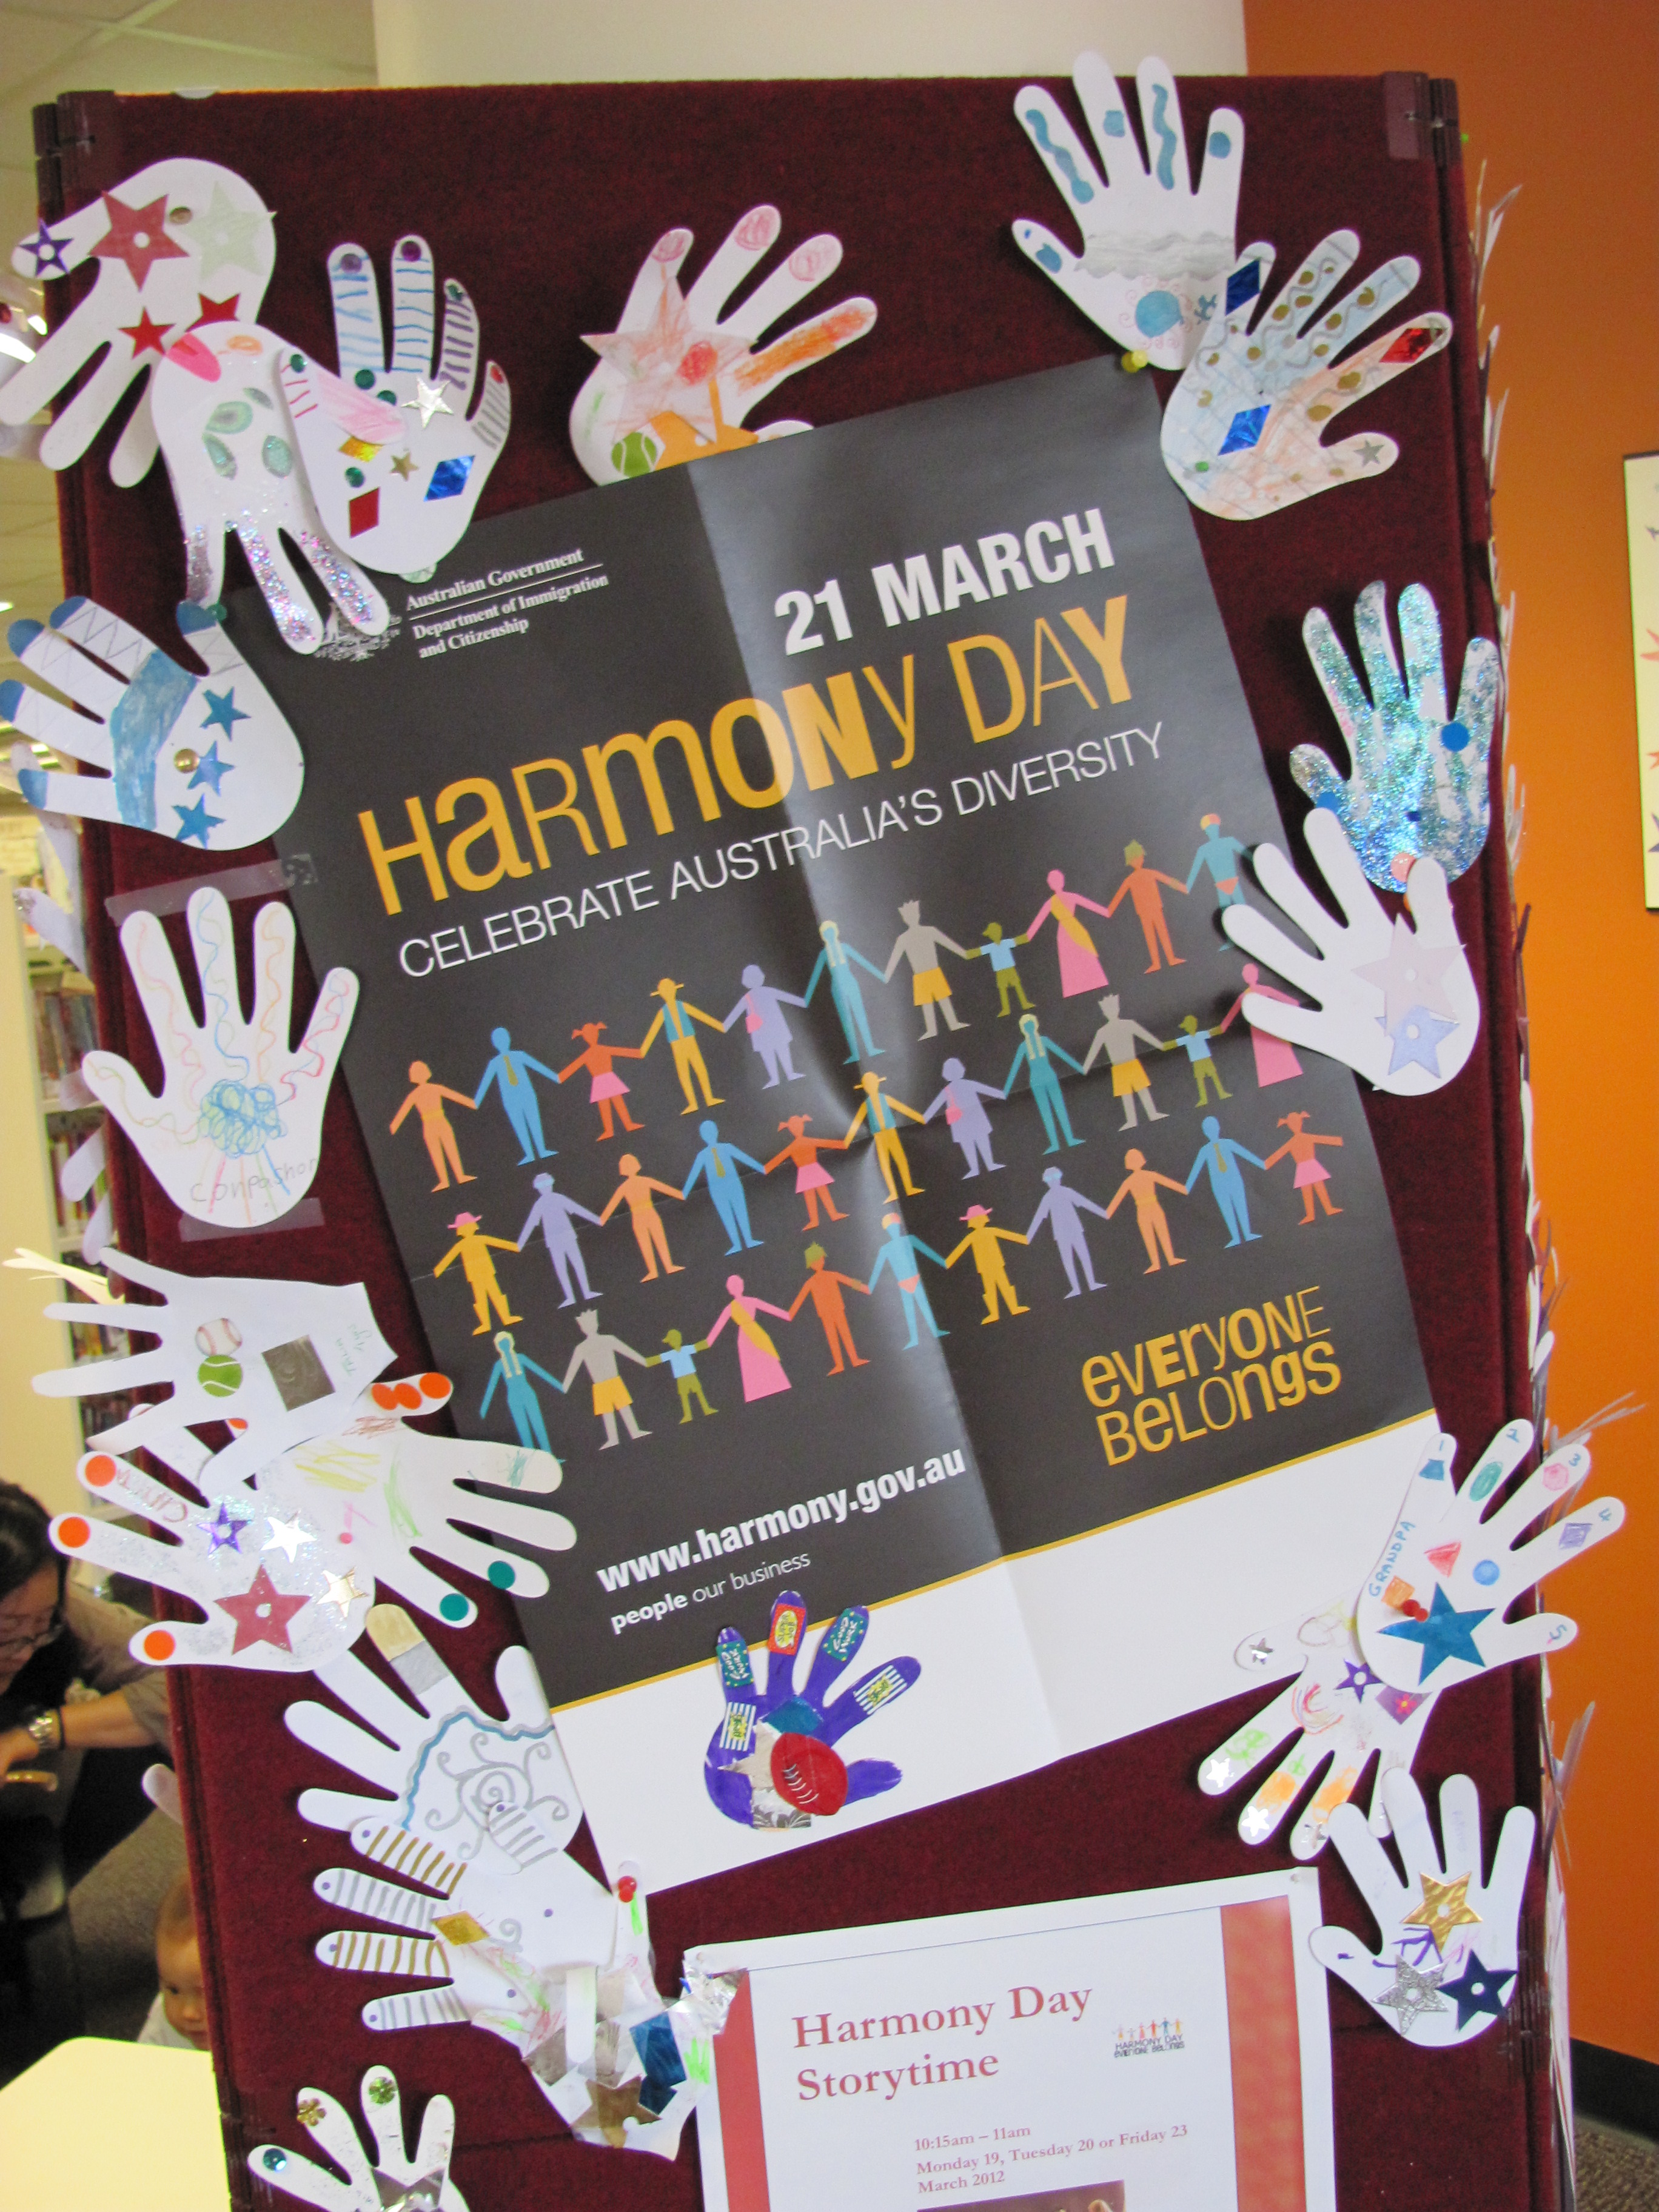 Harmony Day Off The Shelf pertaining to Art And Craft Ideas For Harmony Day